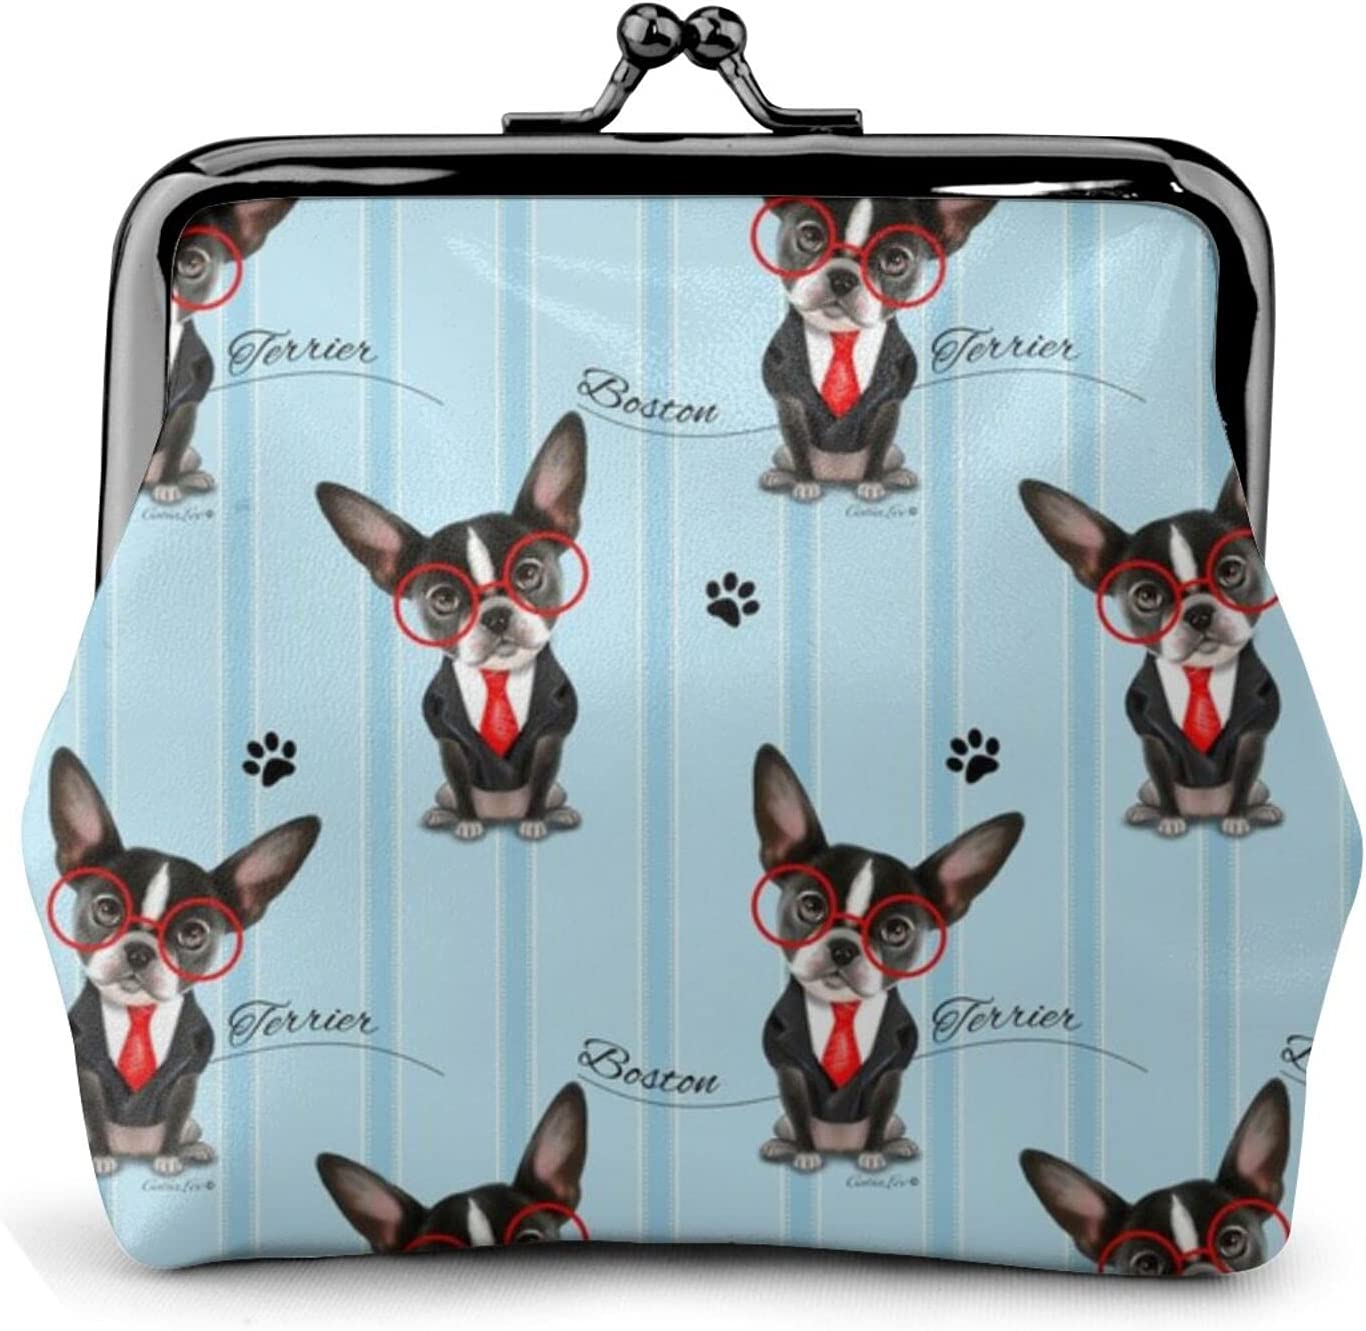 Boston Terrier Business 946 Coin Purse Retro Money Pouch with Kiss-lock Buckle Small Wallet for Women and Girls